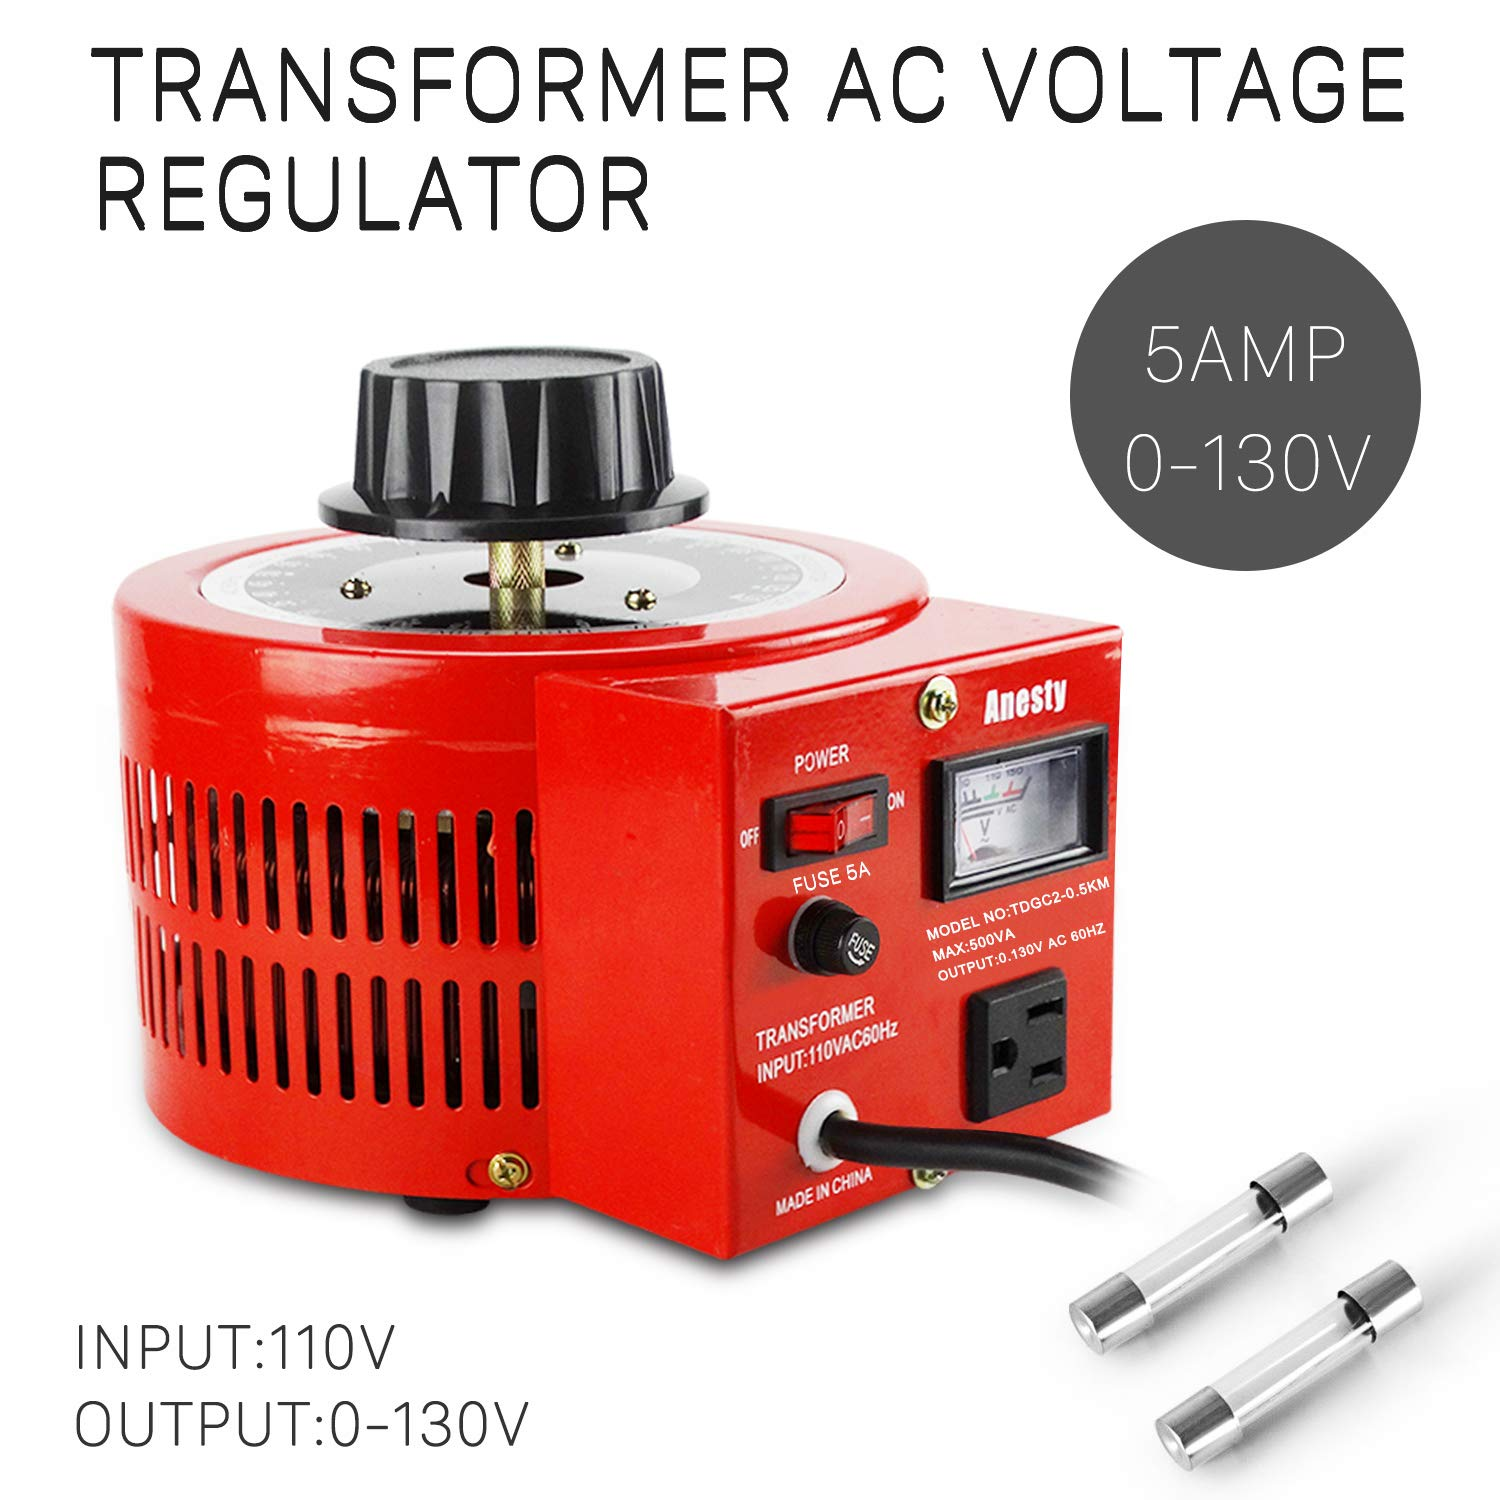 Anesty Variable Auto Transformers Adjustable Voltage Transformers 5Amp 0-130V by Anesty (Image #2)